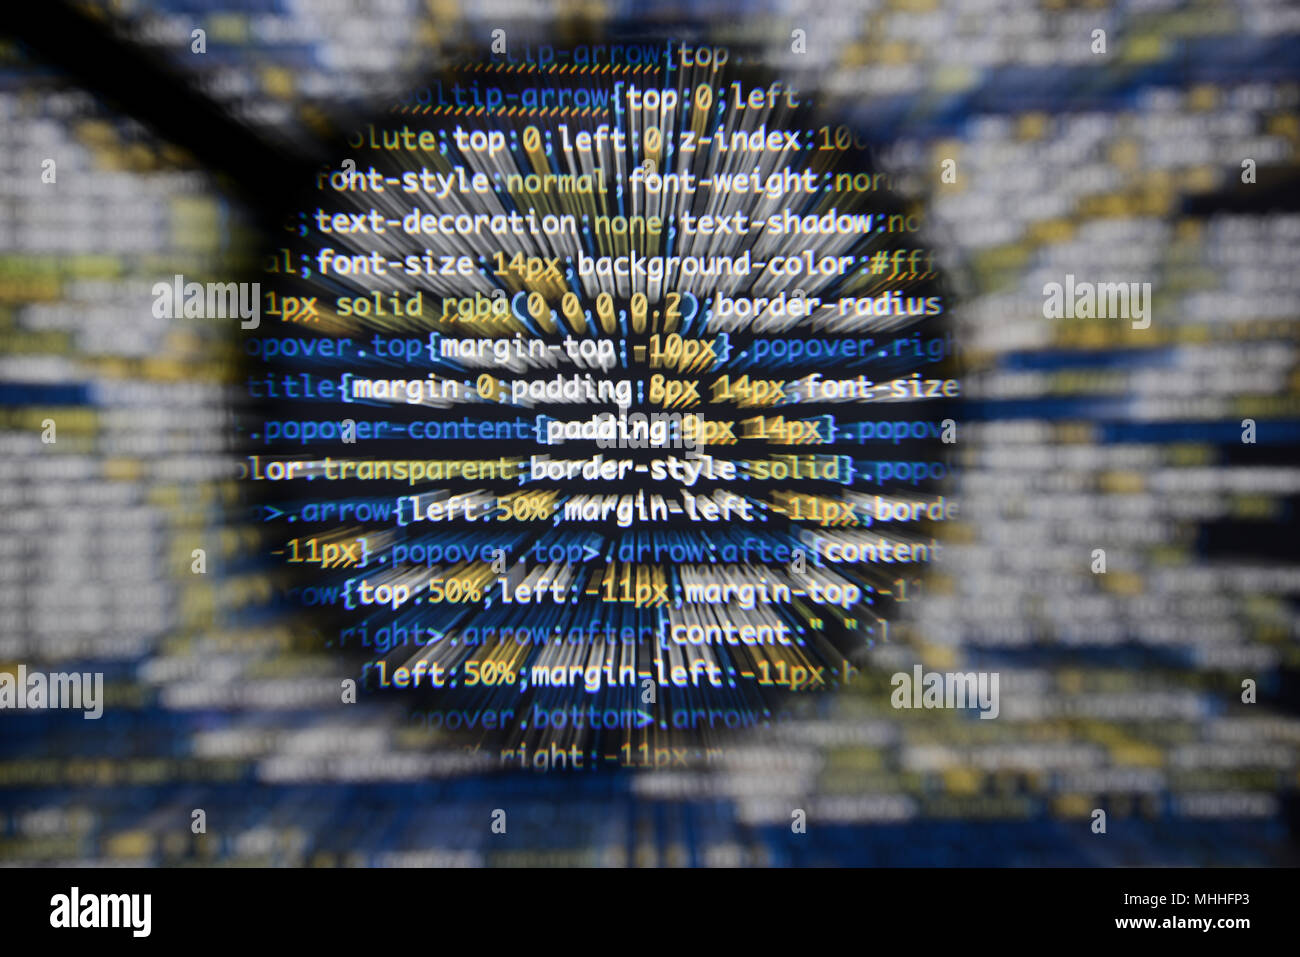 Real css code developing screen. Programing workflow abstract algorithm concept. Lines of css code visible under magnifying lens with moviment effect. - Stock Image